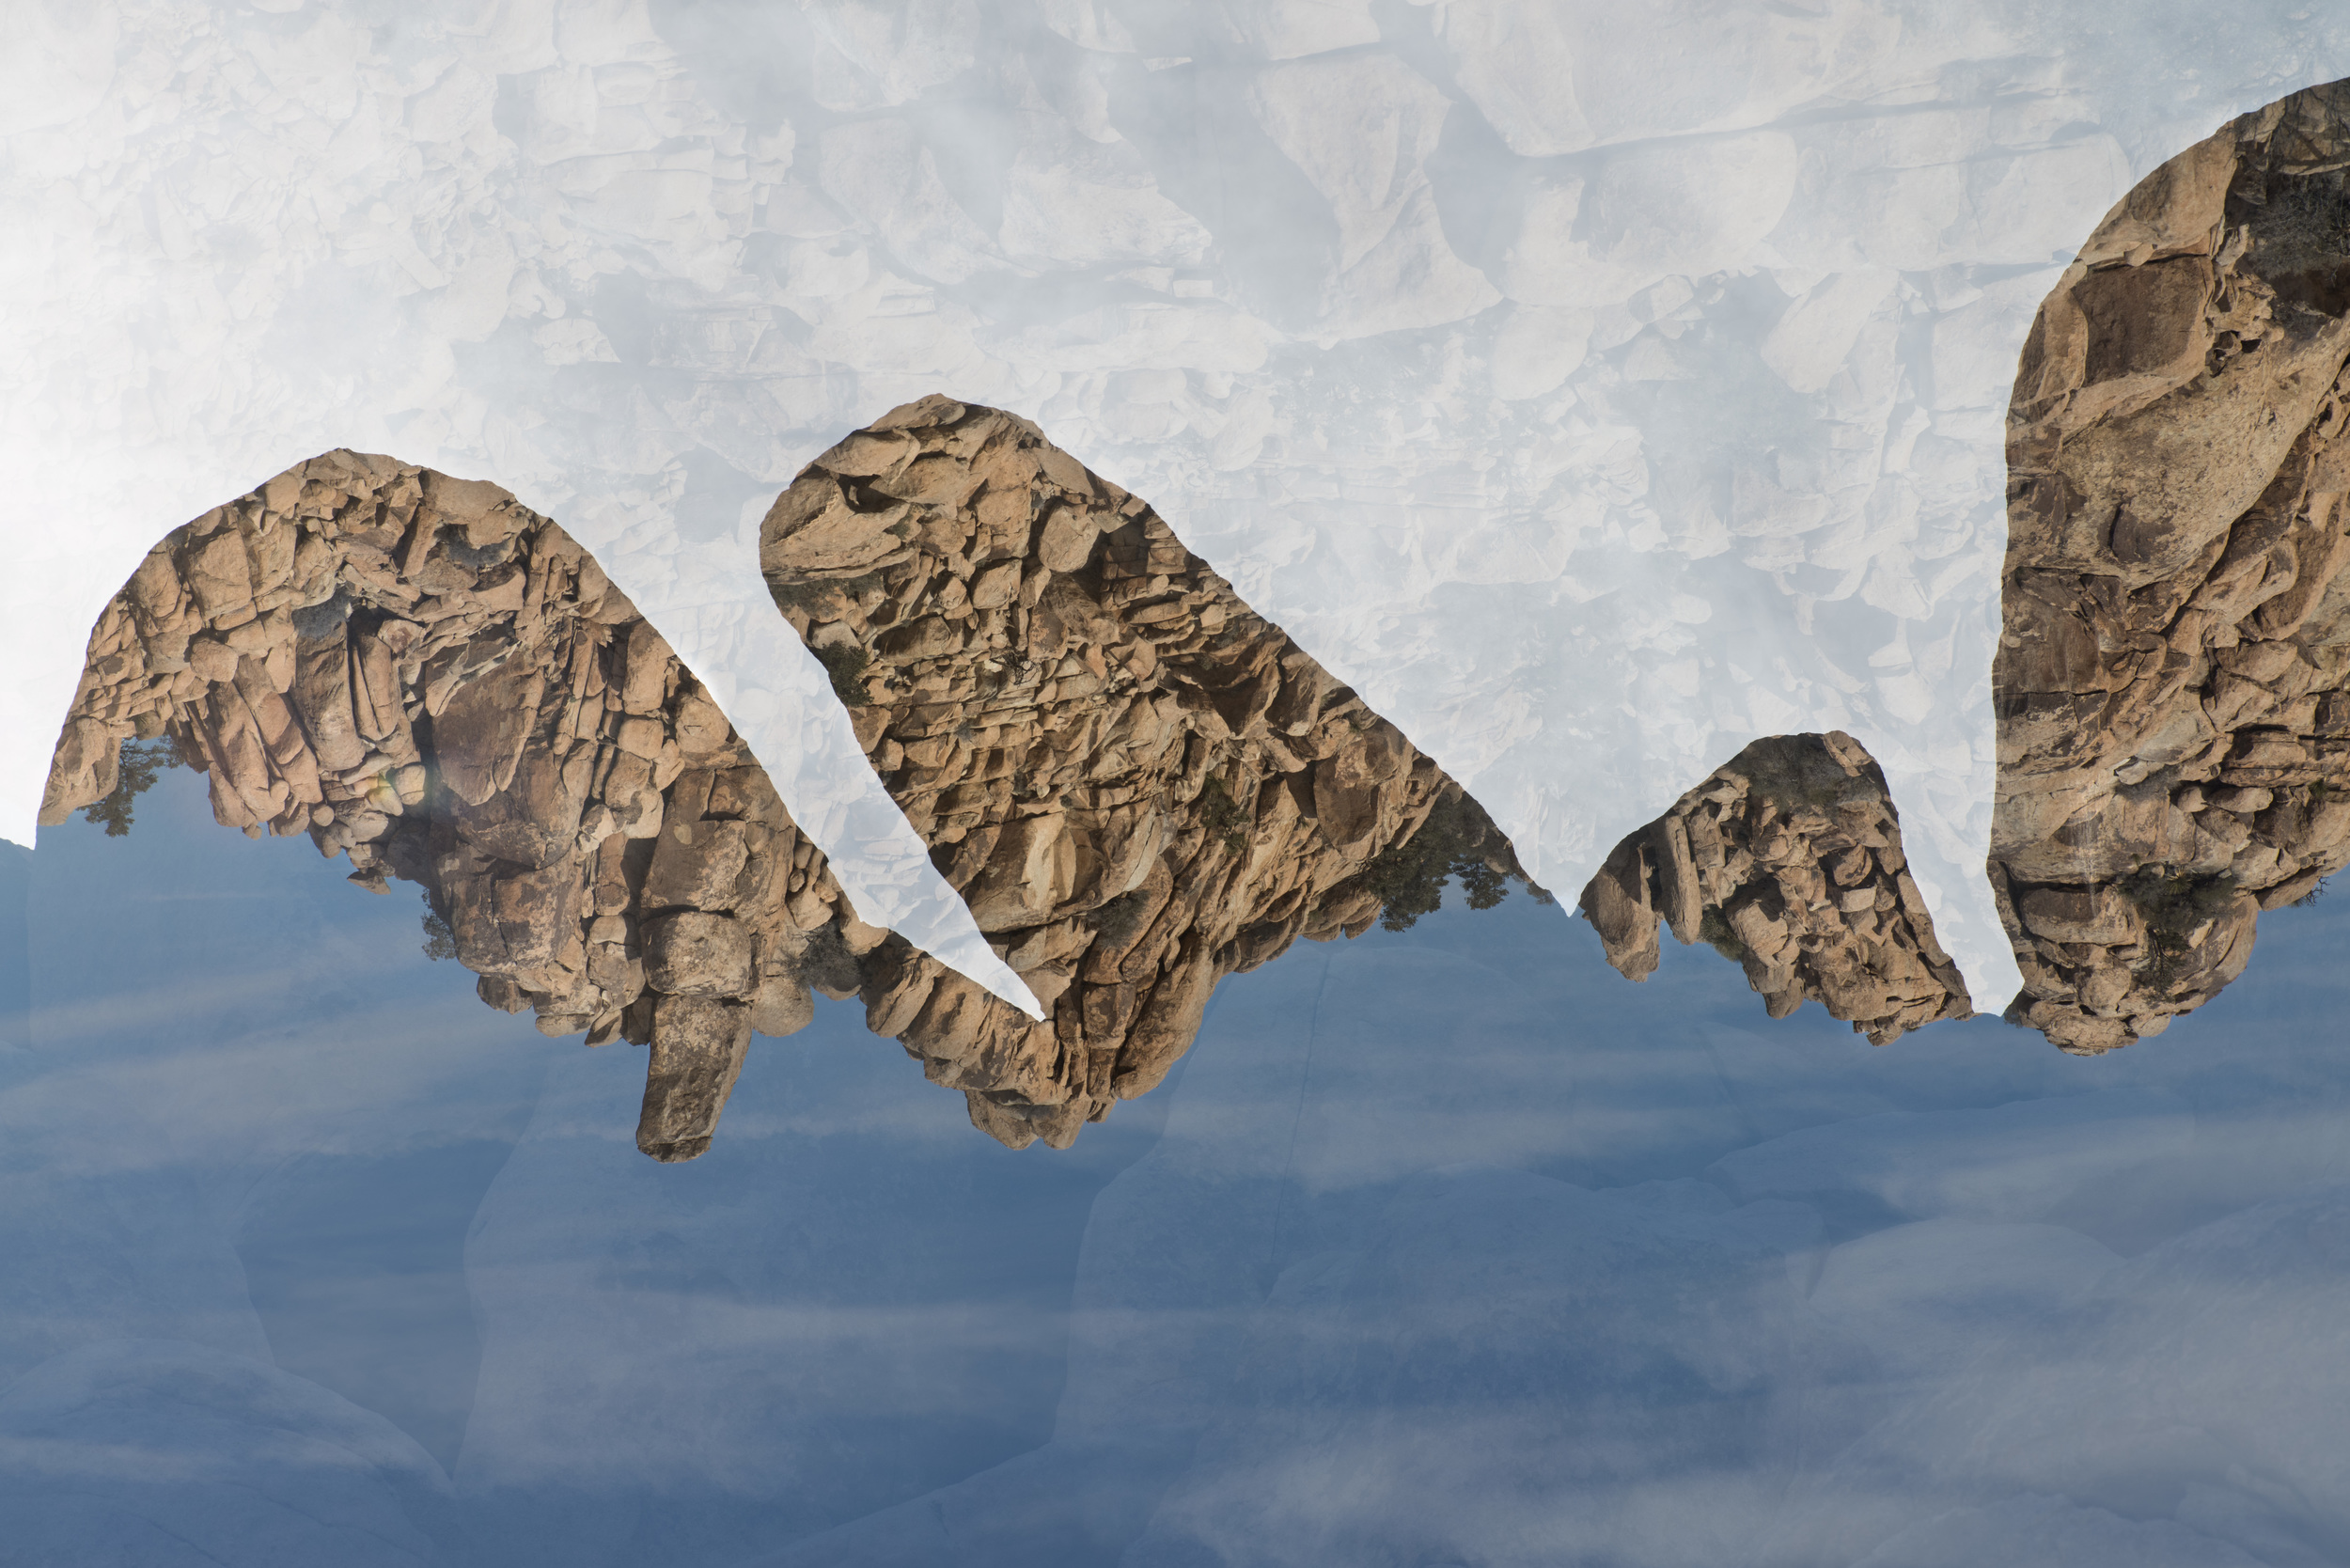 Formations II, 2016 Archival pigment print 30x40 inches